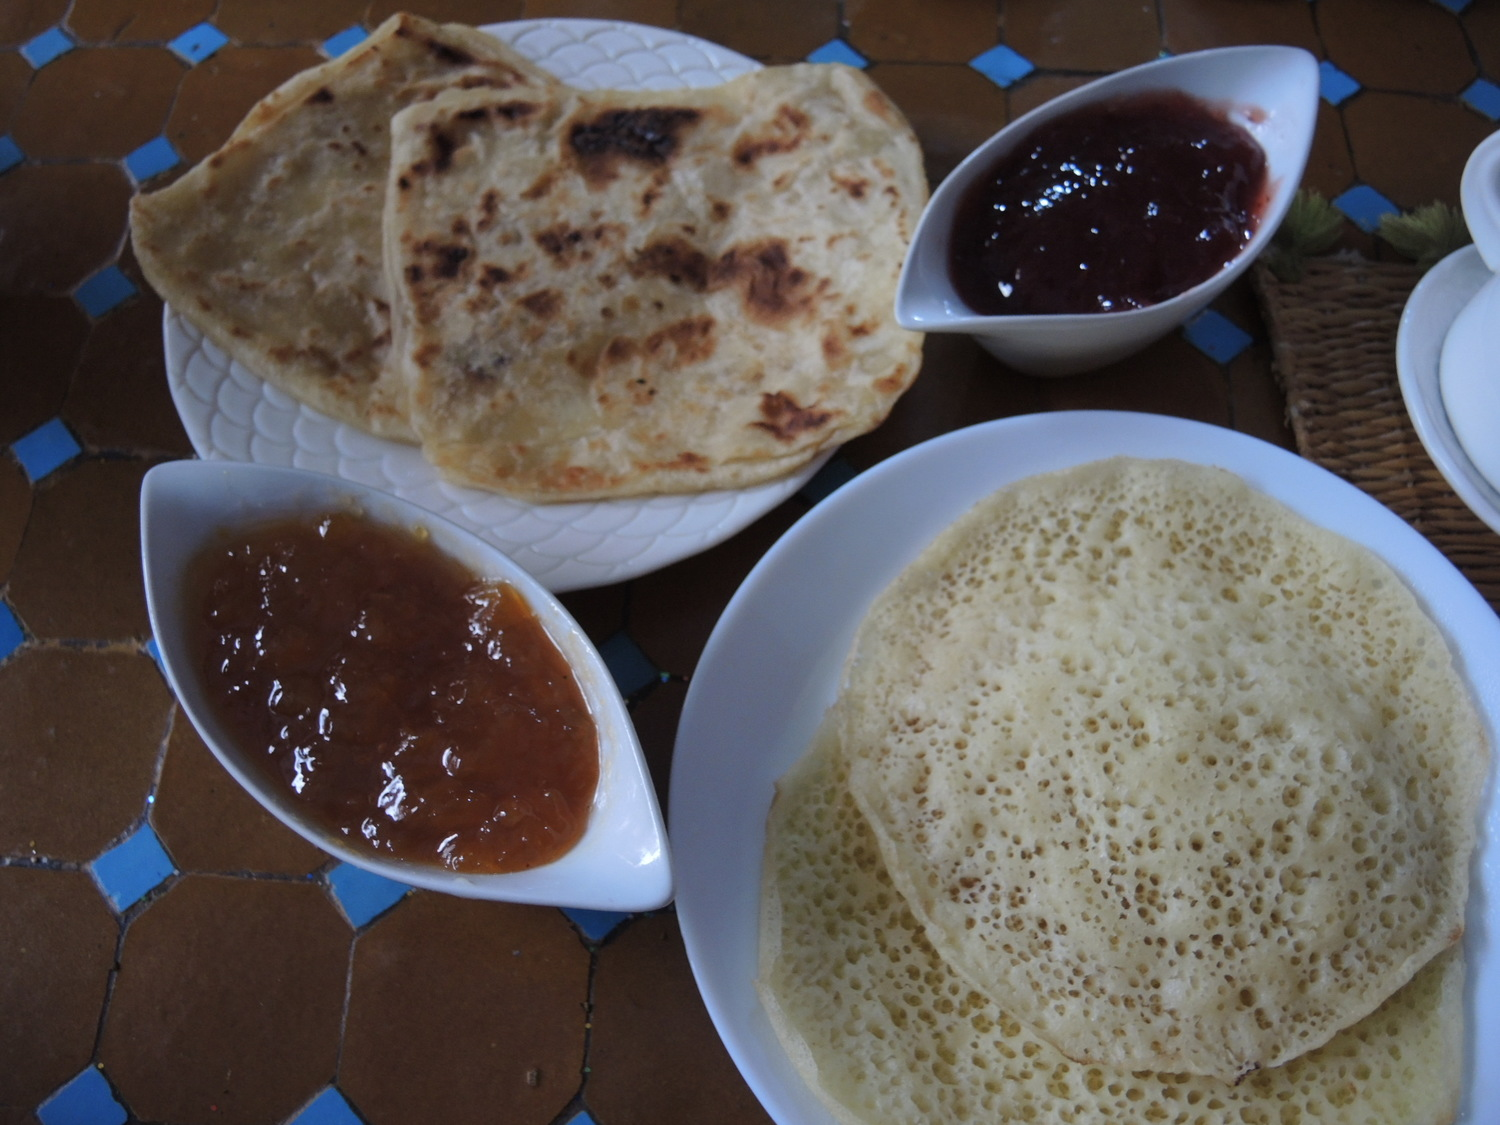 Moroccan crepes with jams